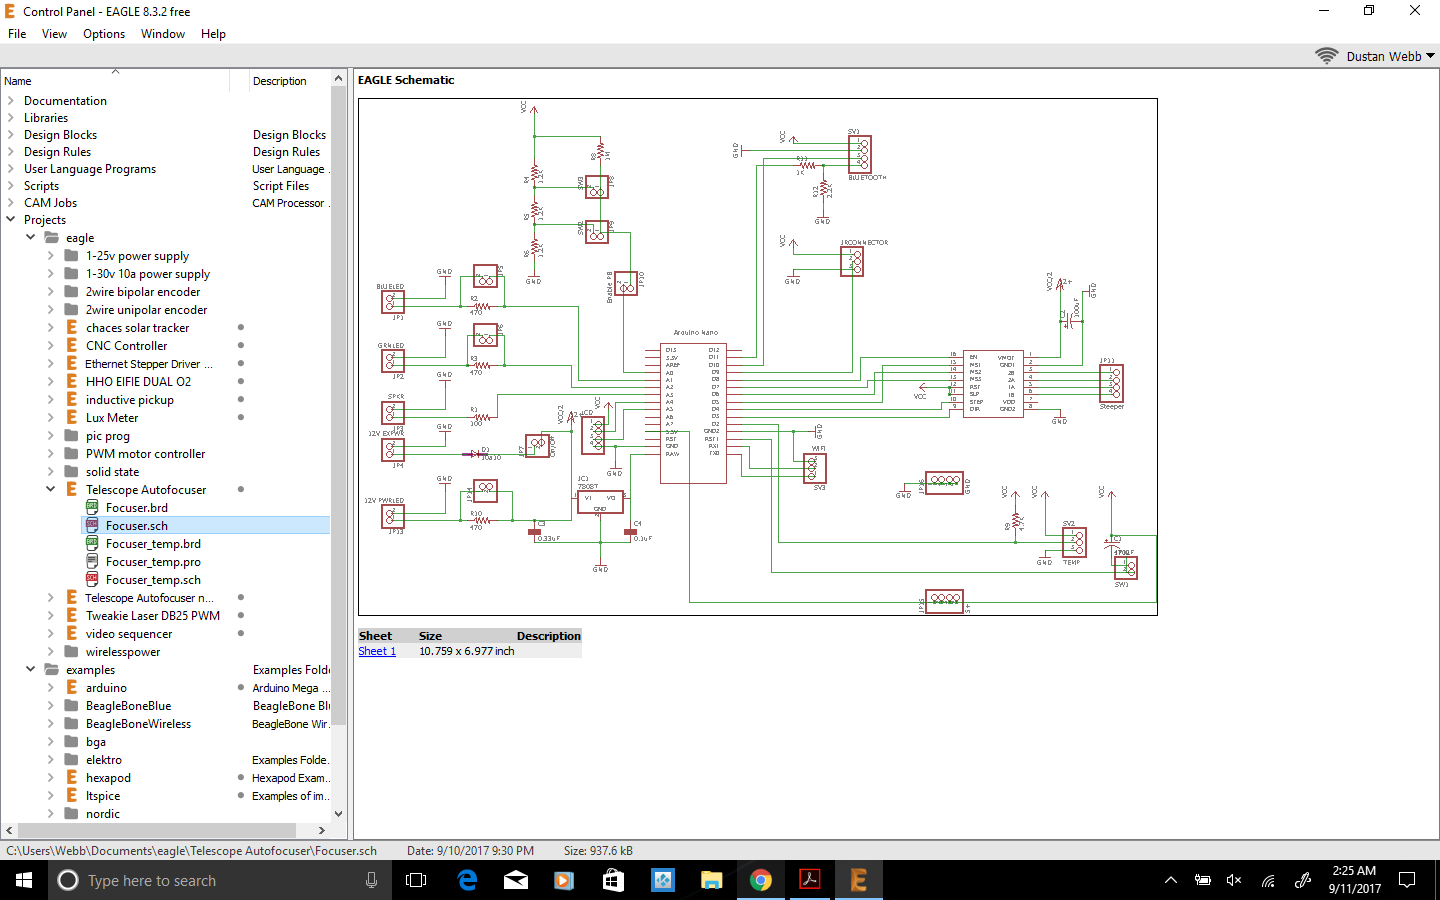 Amazing Eagle Cad Viewer Frieze - Electrical System Block Diagram ...